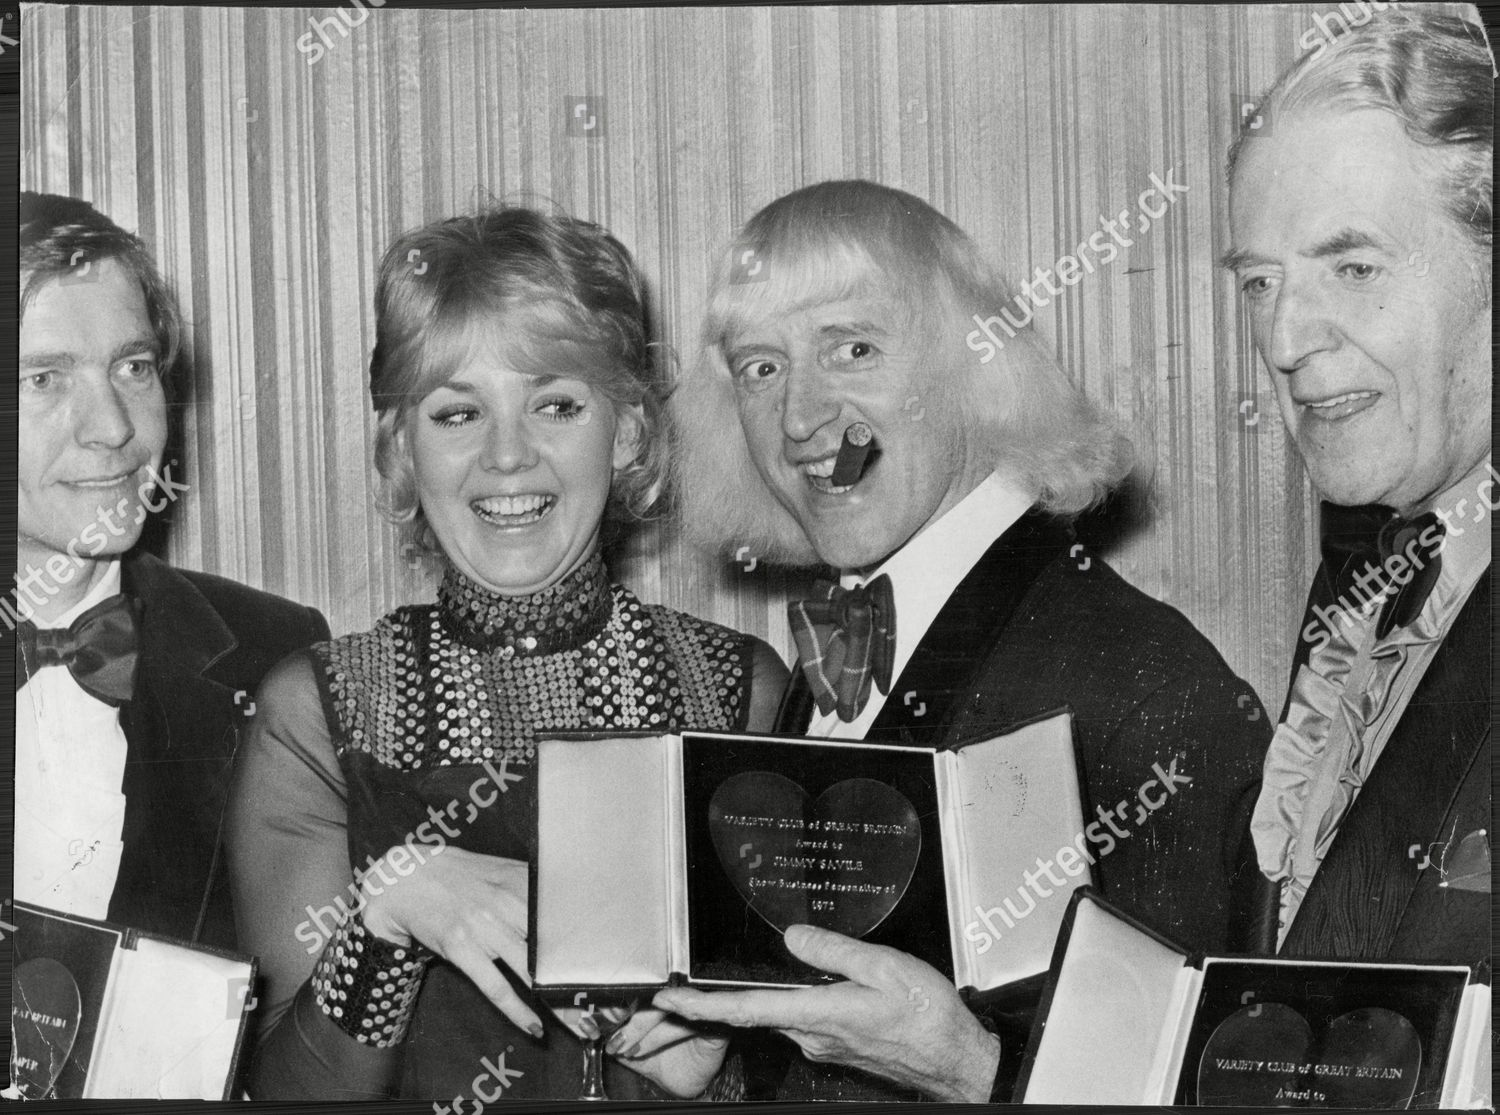 jimmy-savile-at-the-variety-club-awards-